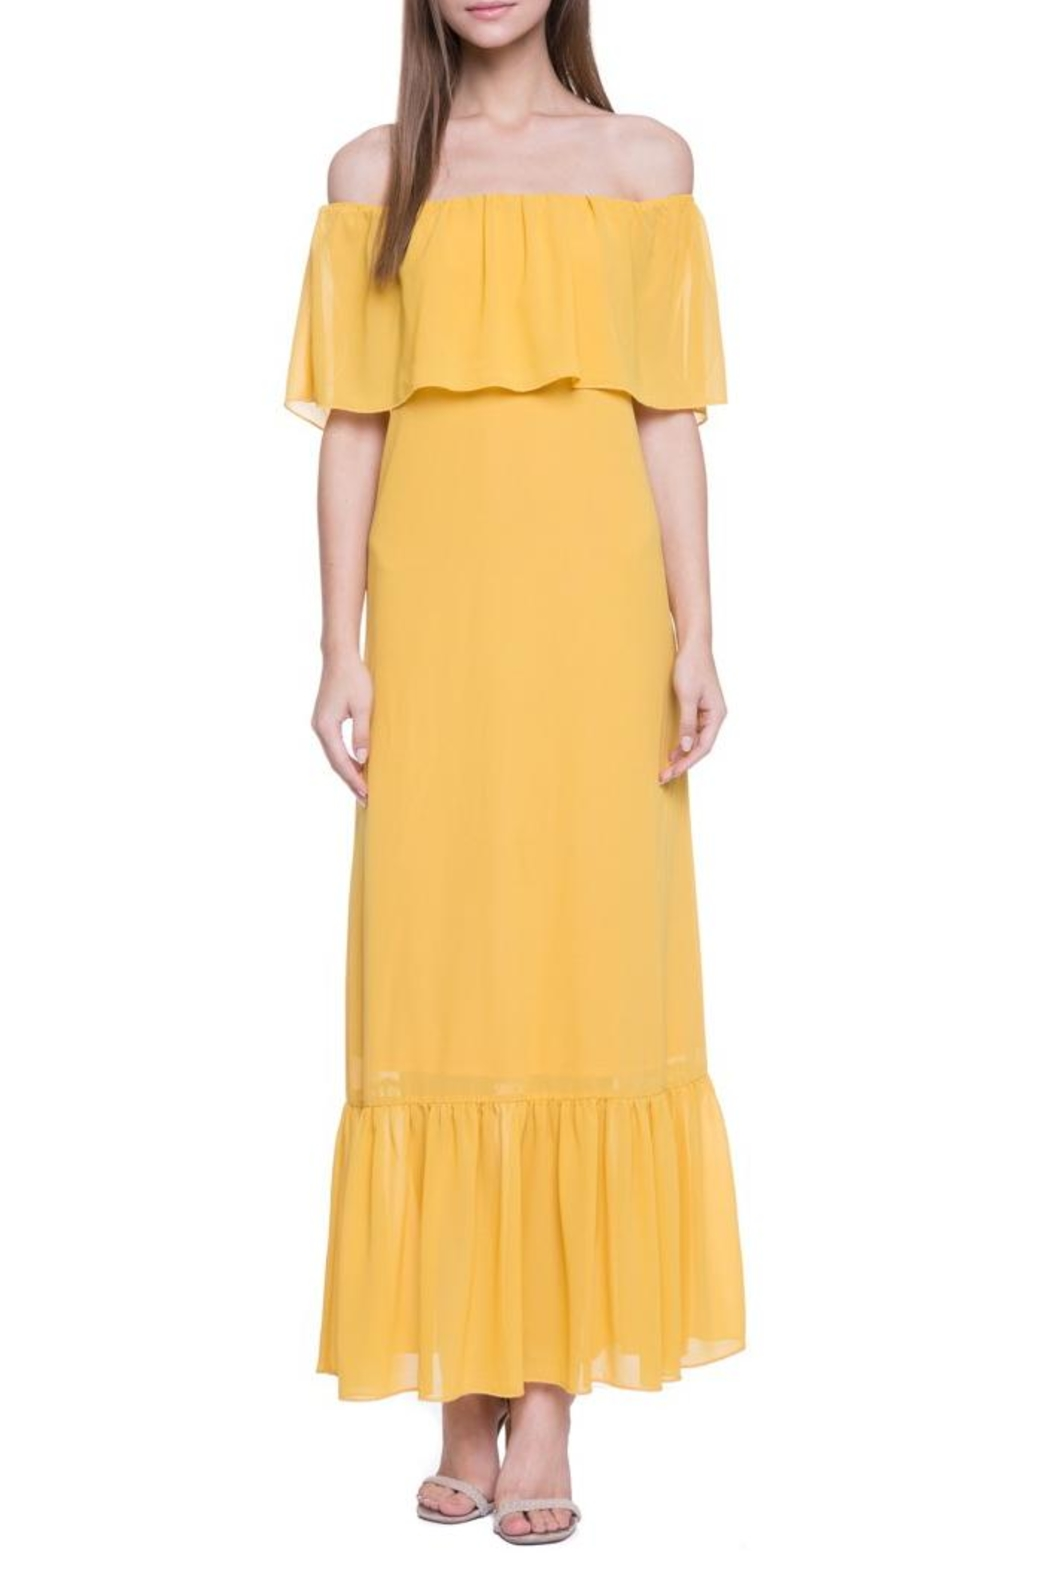 After Market Yellow Maxi Dress - Side Cropped Image